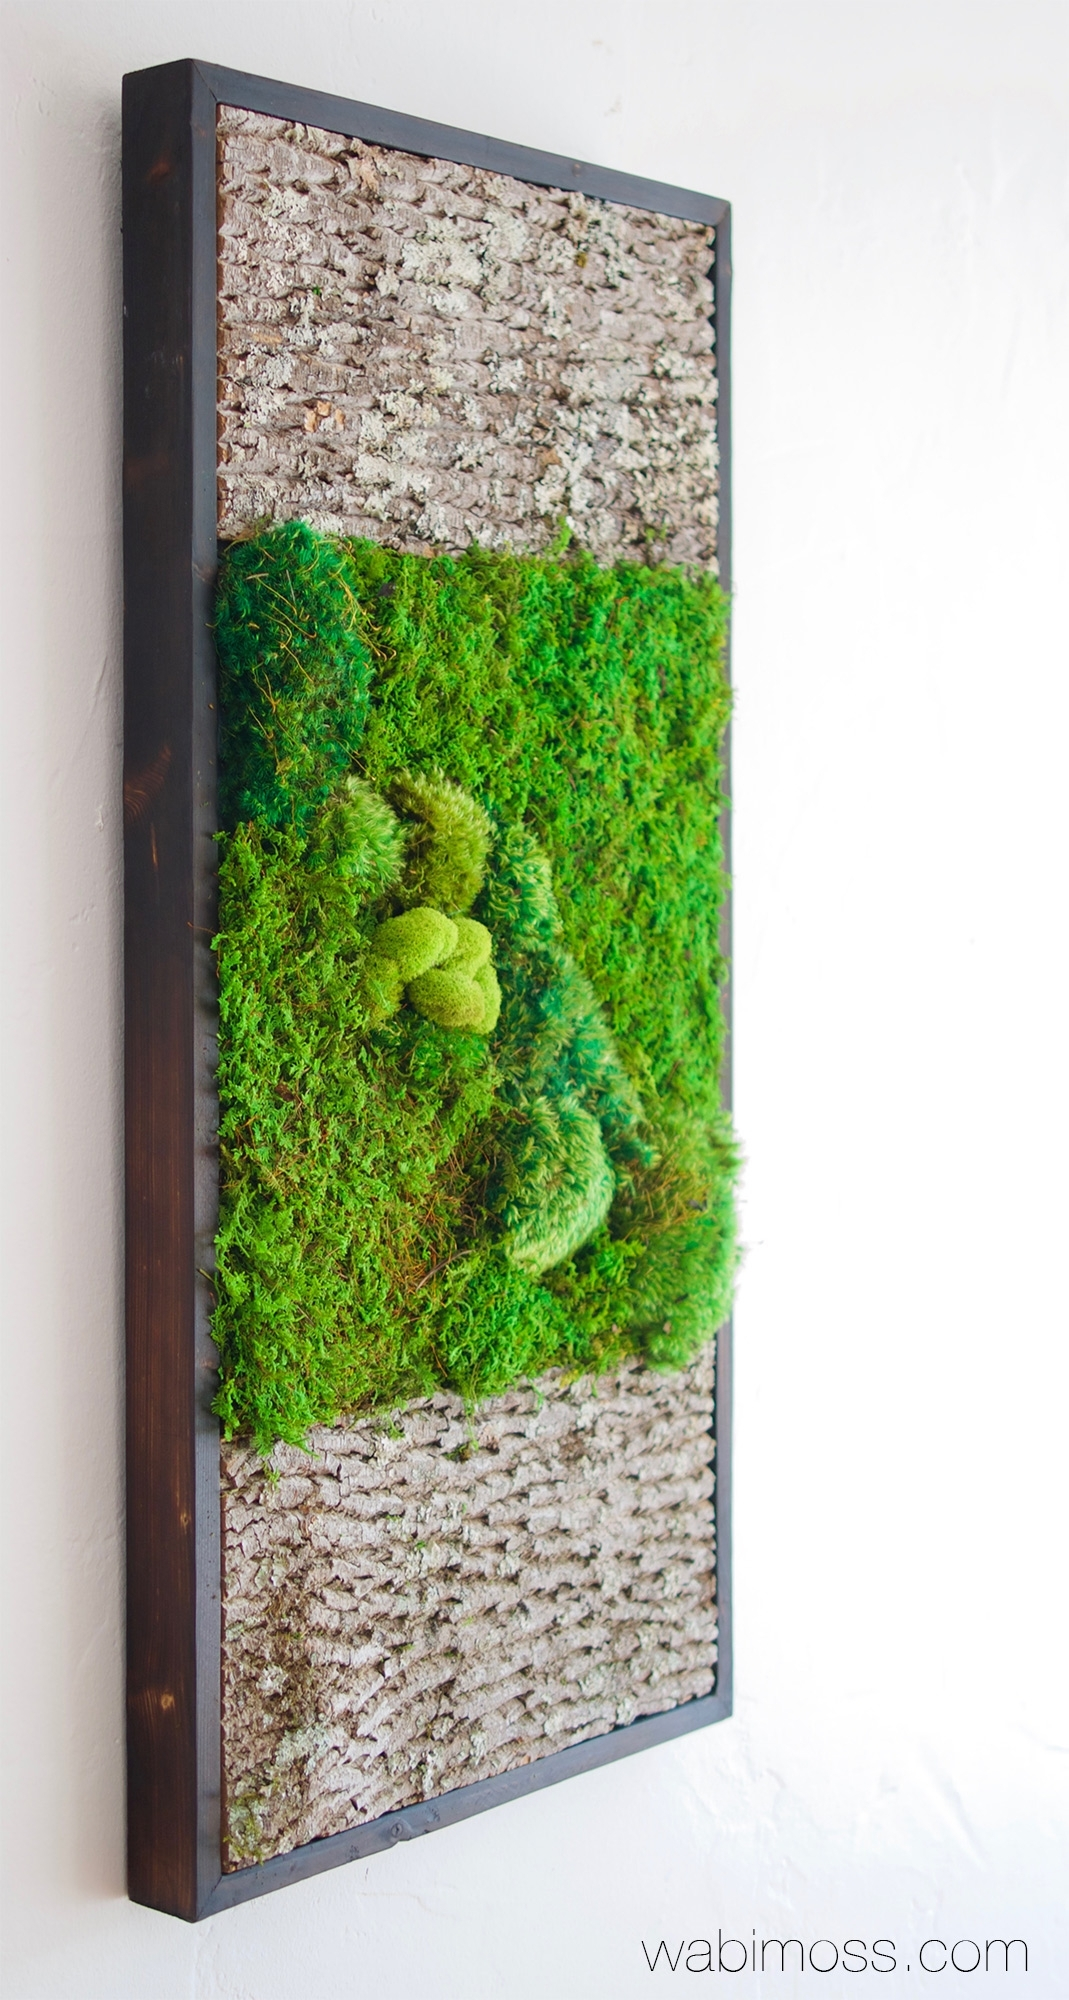 Bark And Moss Wall Art 36X18 - Wabimoss with Moss Wall Art (Image 2 of 20)